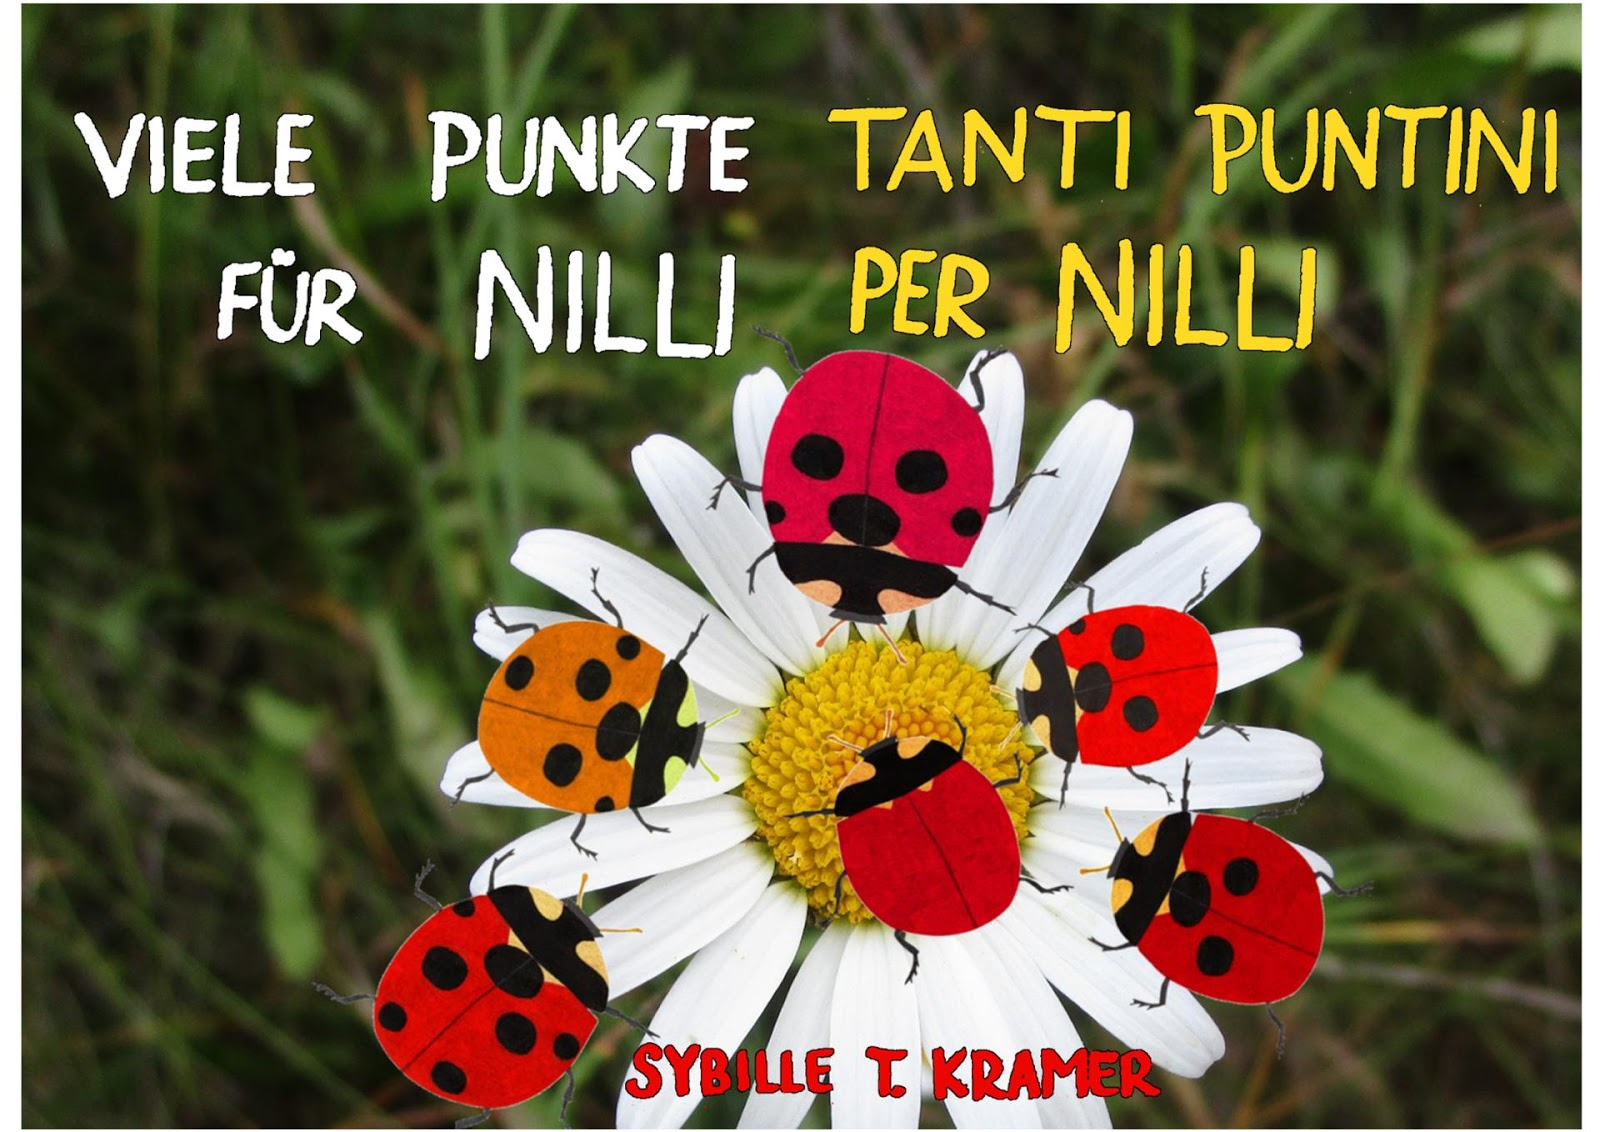 Tanti puntini per Nilli - Viele Punkte für Nilli